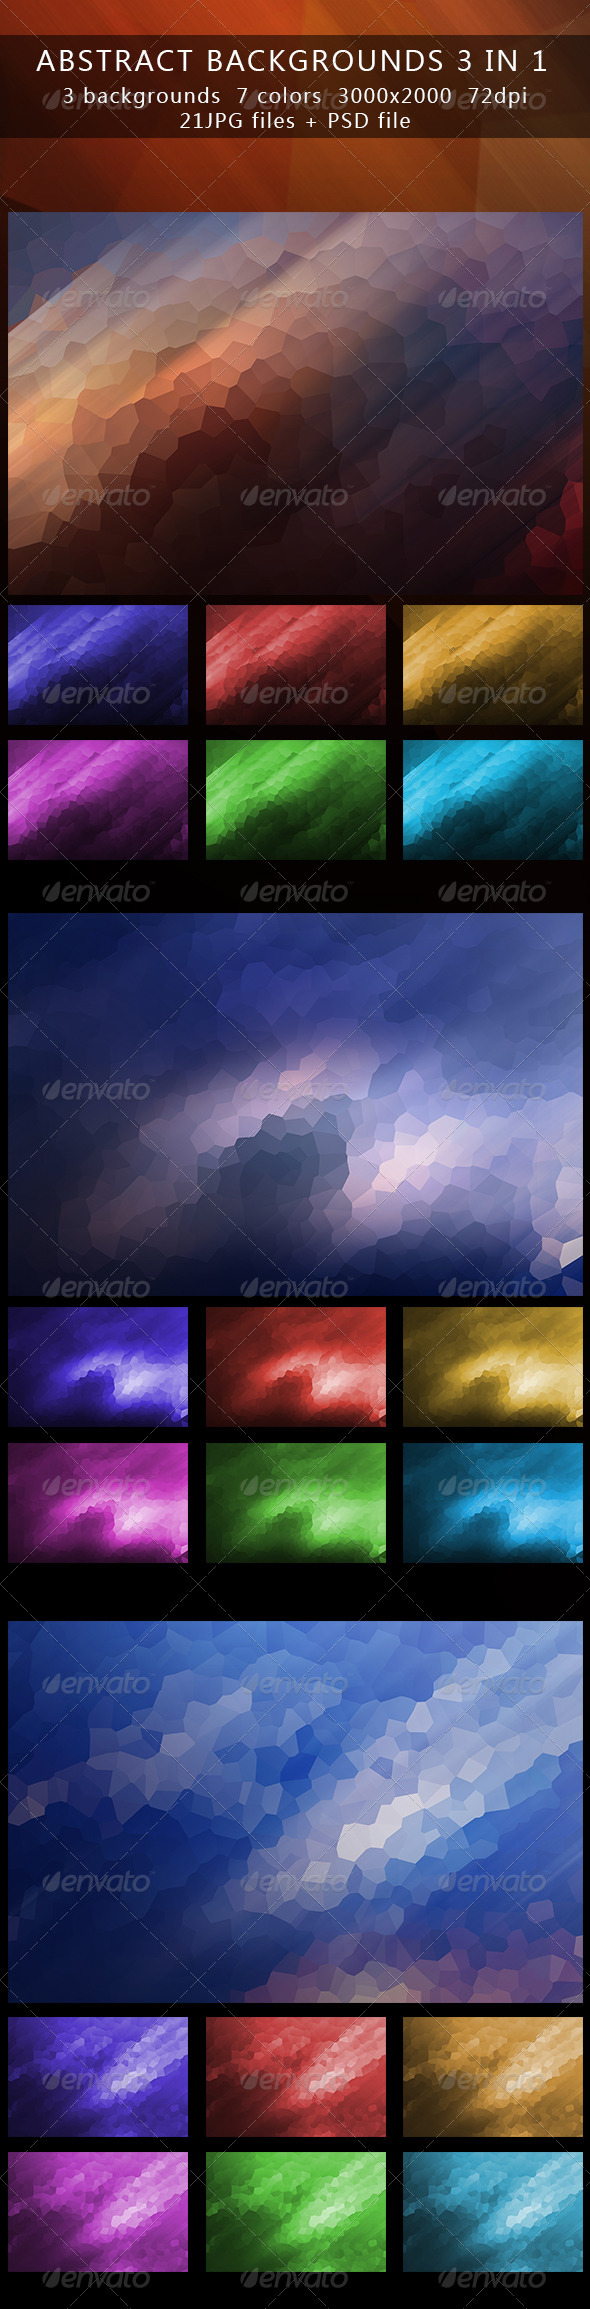 GraphicRiver Abstract backgrounds part 2 3in1 5208800